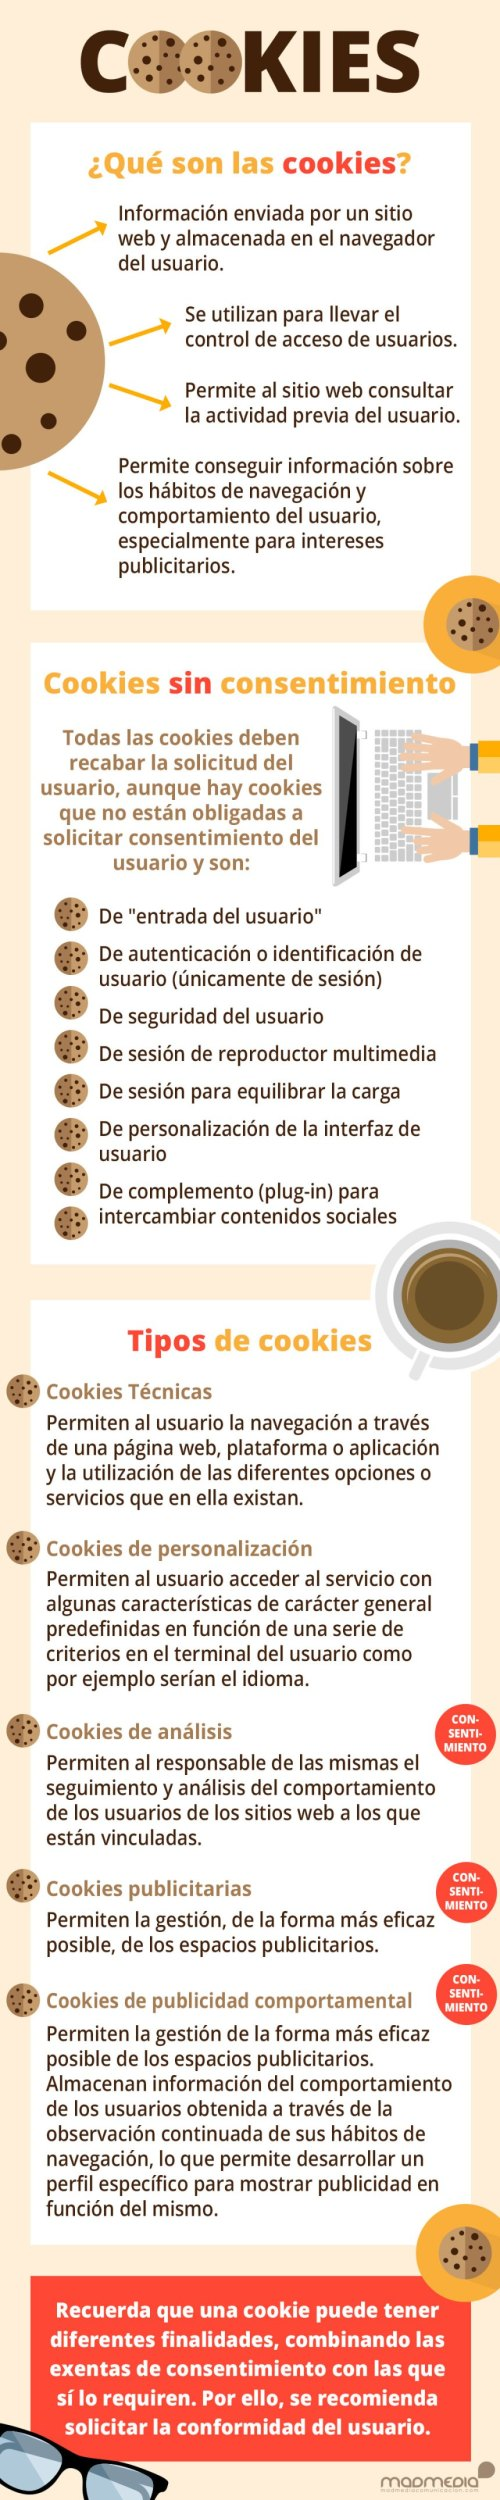 que-son-las-cookies